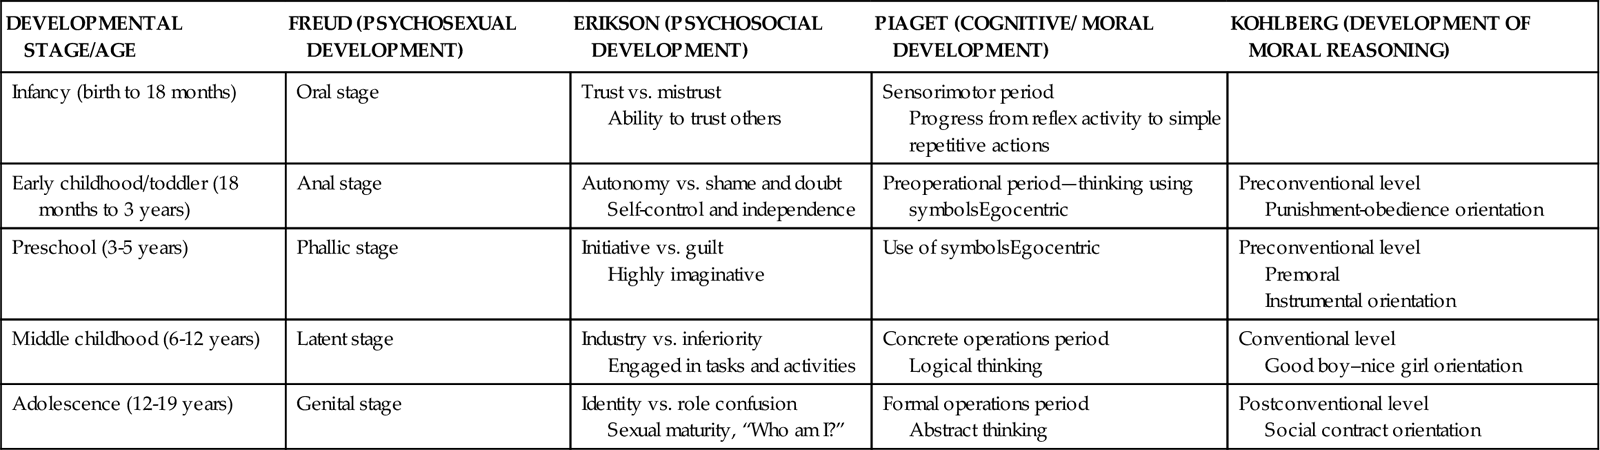 compare and contrast freud erikson and piaget Compare and contrast two developmental theories of intelligence intelligence is a complex psychological construct and promotes fierce debate amongst academics piaget and vygotsky: compare and contrast freud's psychoanalytic theory later followed by erikson's psychosocial theory.